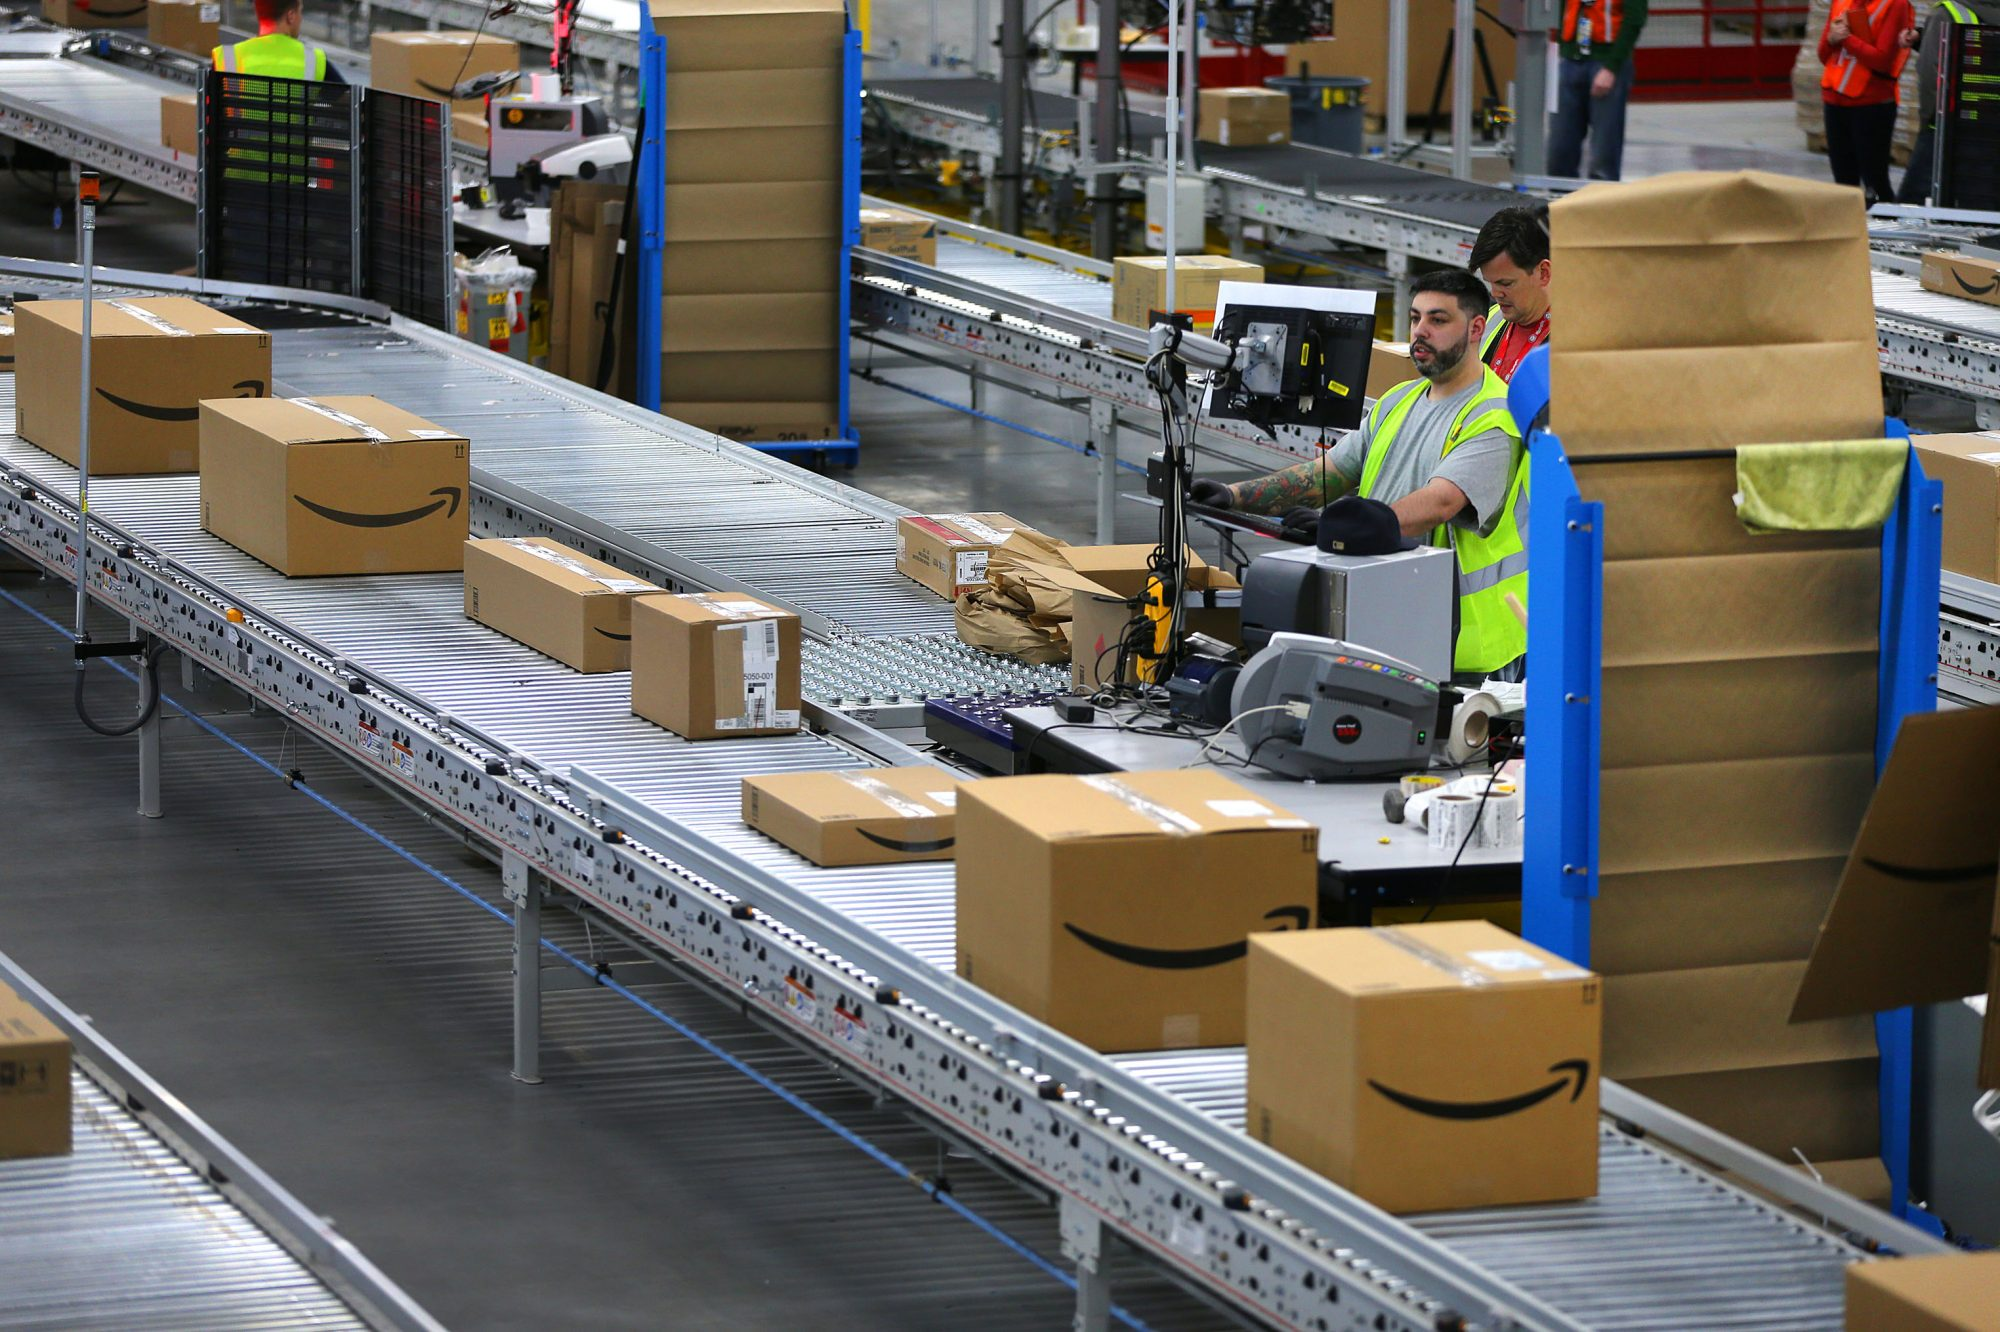 A Look Inside Amazon's Fall River Warehouse